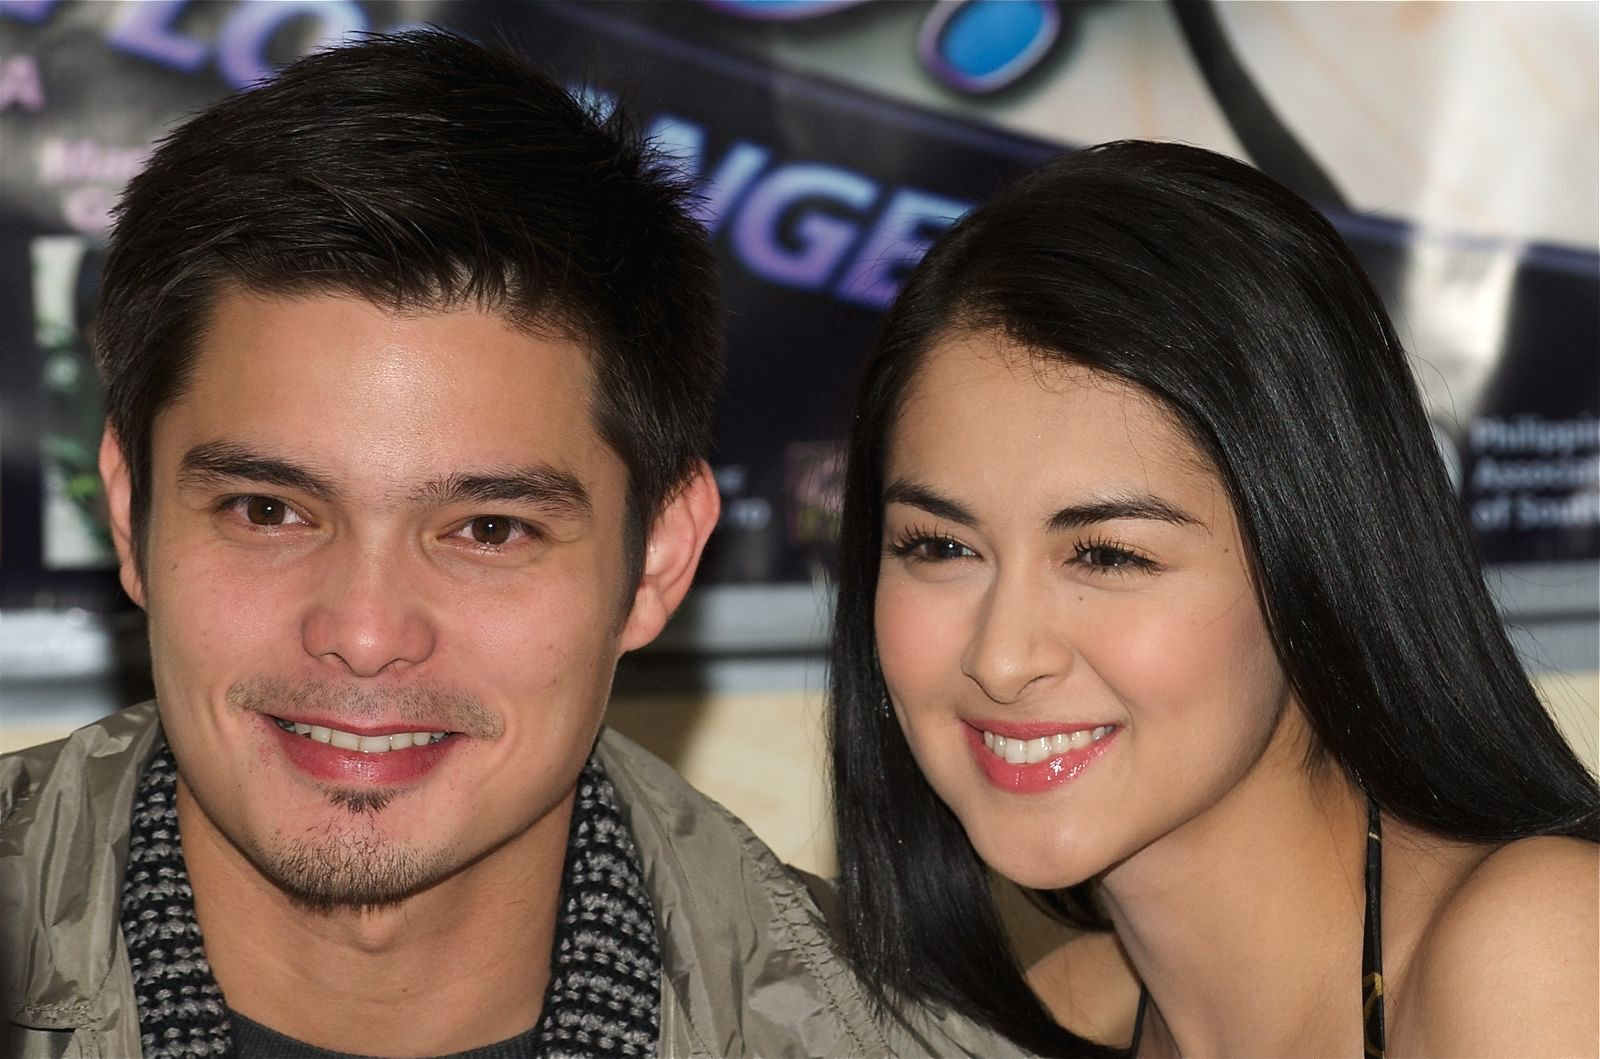 Marian Rivera and Dingdong Dantes LA Press Conference, December 2008 (01).jpg English: Marian Rivera and Dingdong Dantes at a press conference